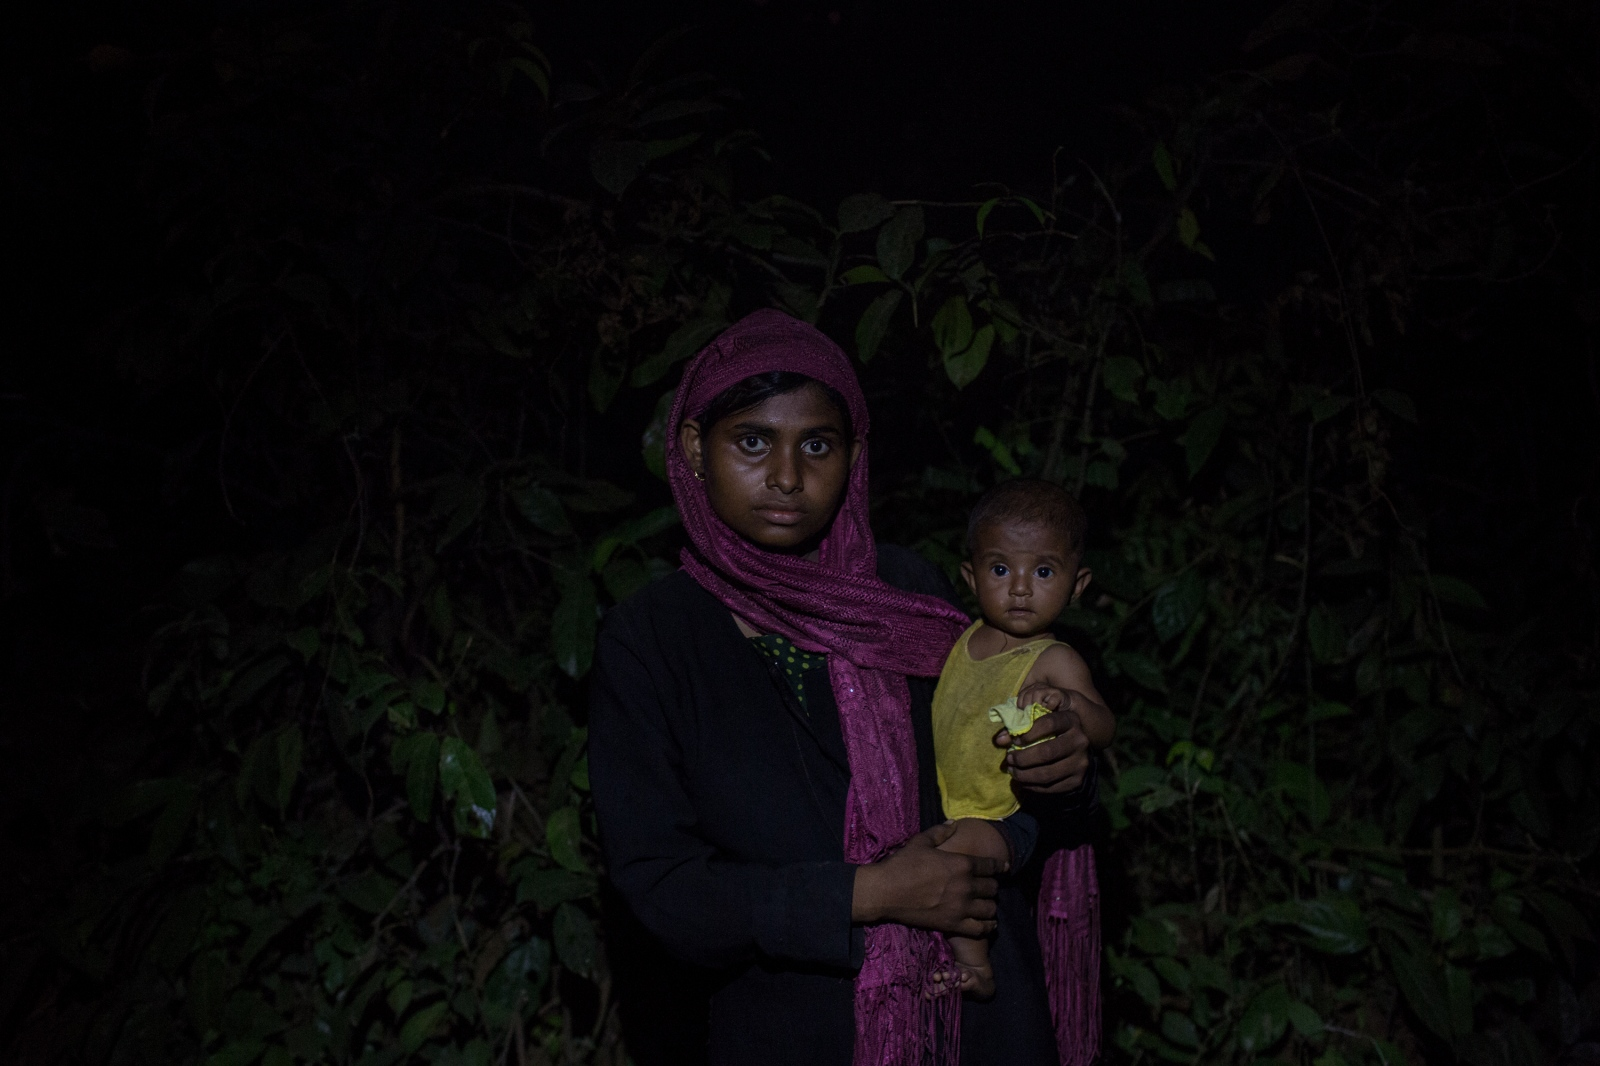 Settera, 25, waits on the side of the road for food and cash distributions with one of her two children near the Balukhali refugee camp in Bangladesh, on Friday, September 22, 2017. Settera's husband remains in Myanmar although she does not know of his fate since the military entered her village and forced people to flee.